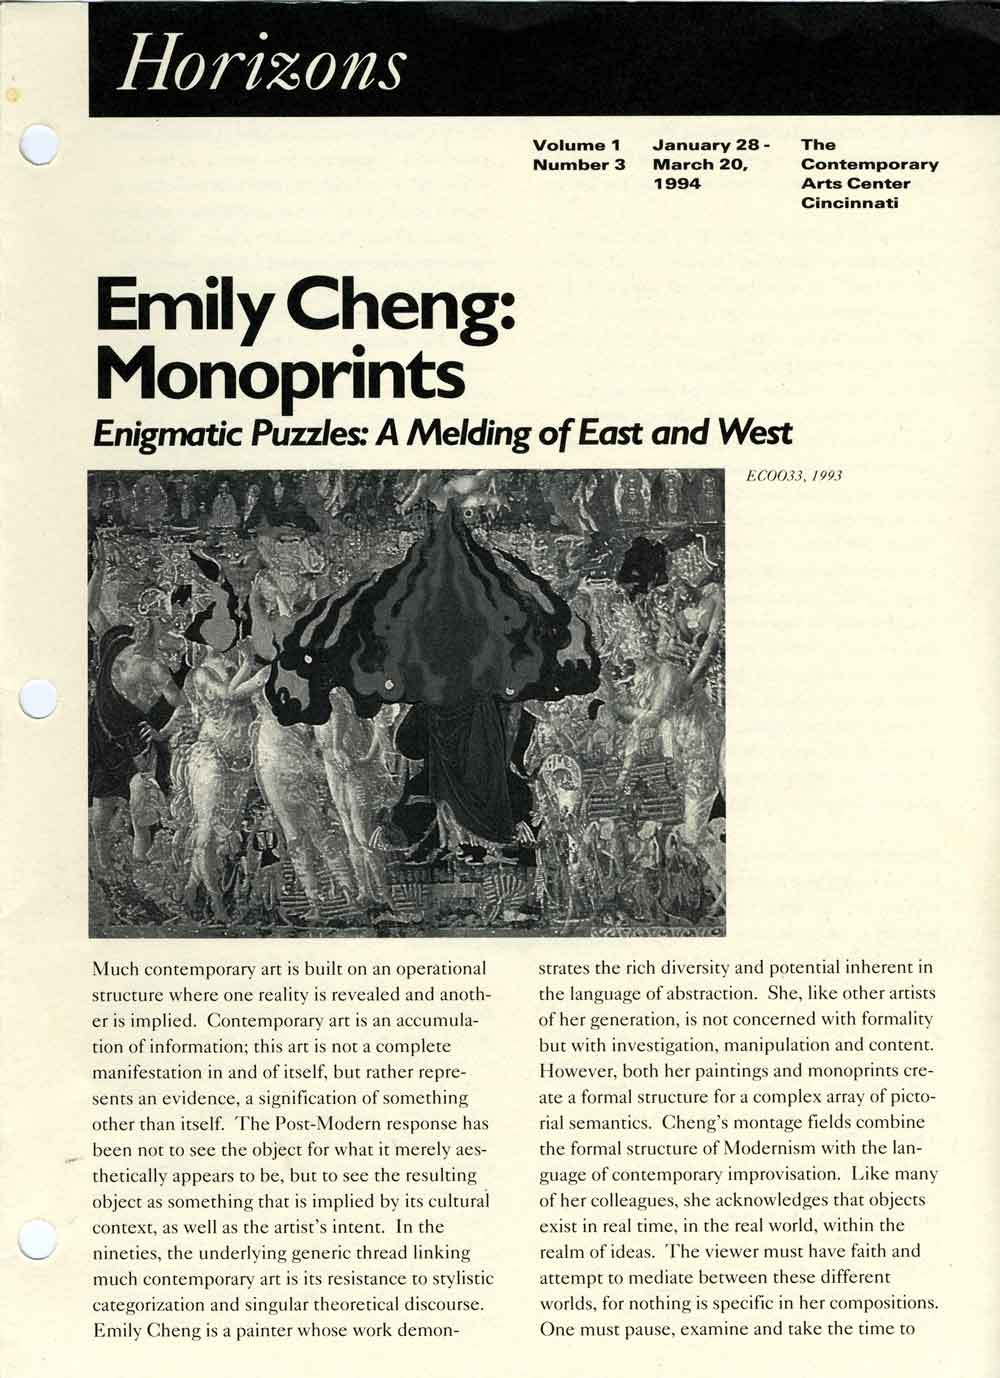 Emily Cheng: Monoprints, pg 1